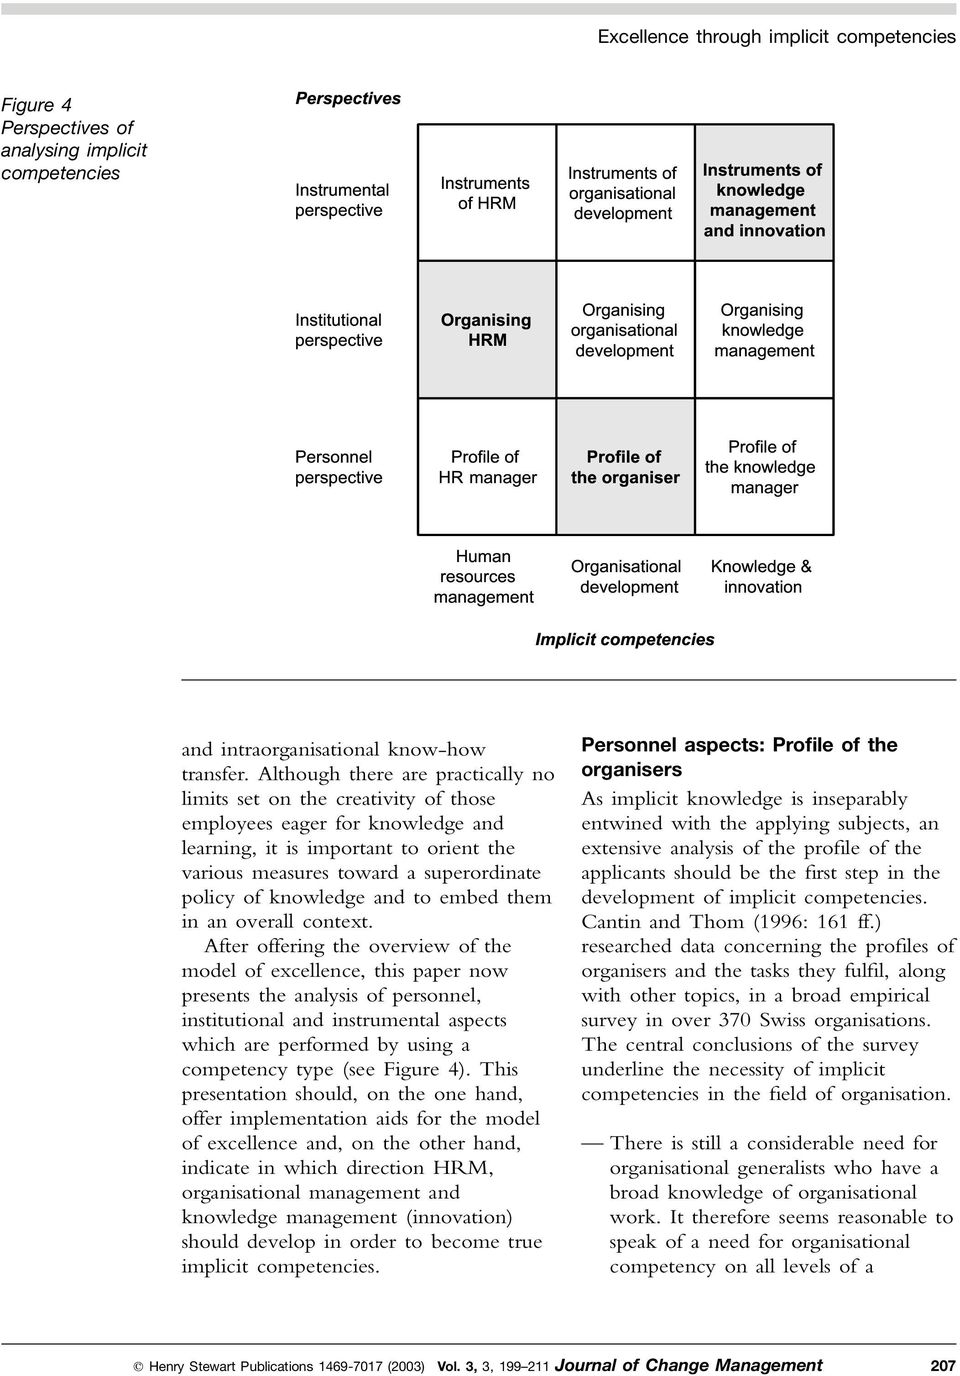 management Personnel perspective Profile of HR manager Profile of the Organizer organiser Profile of the knowledge manager Human resources management Organisational development Knowledge & innovation